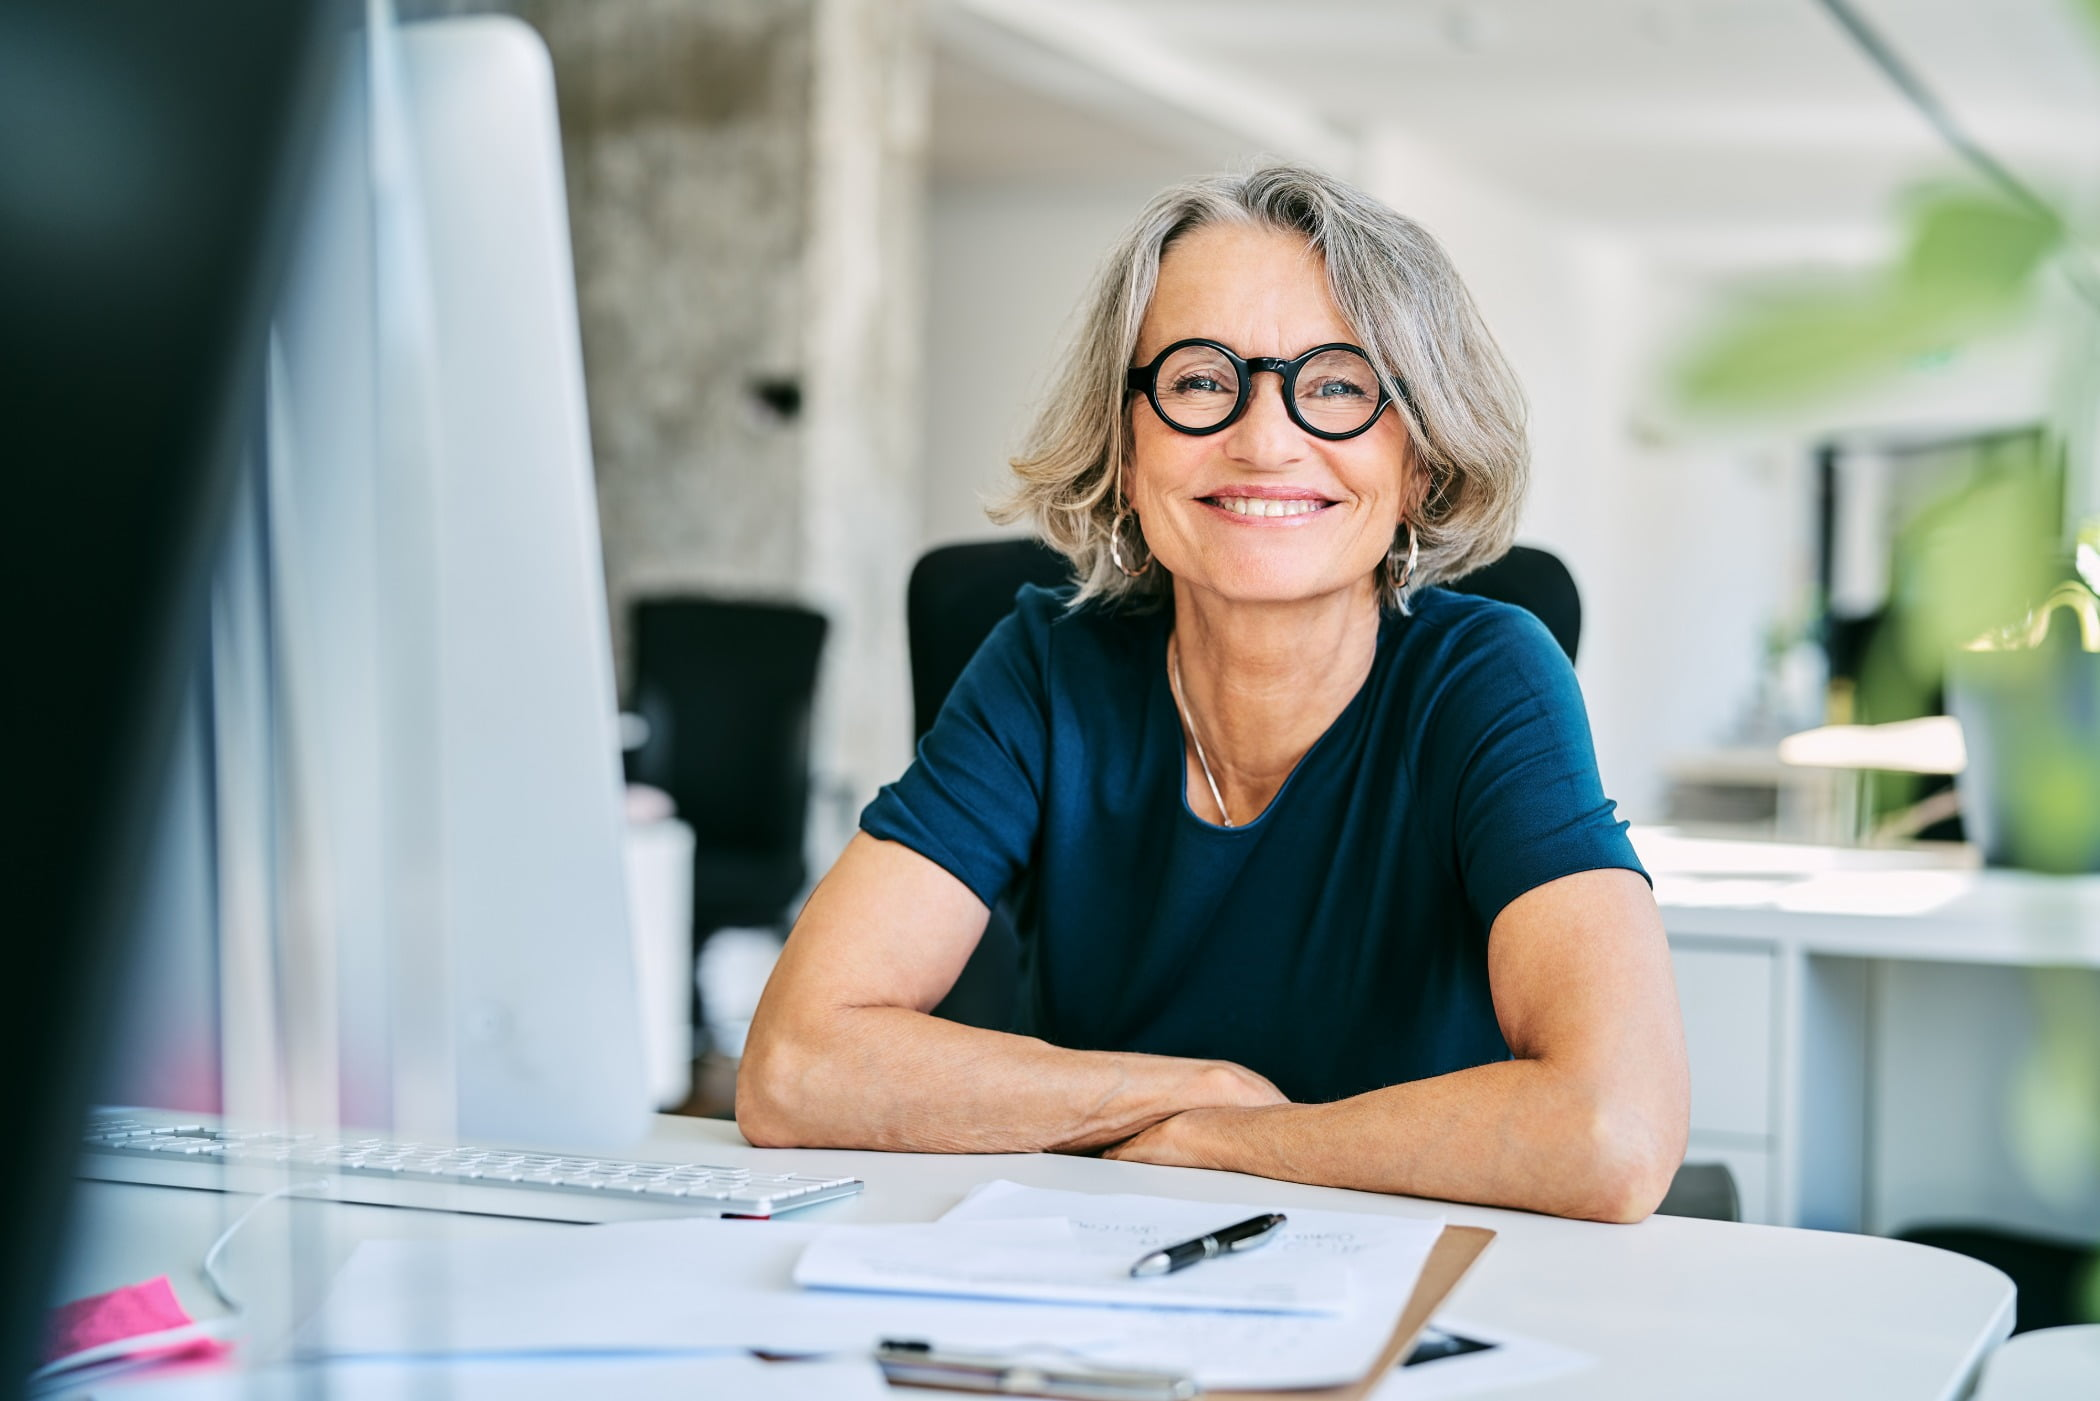 Smiling businesswoman at desk in office